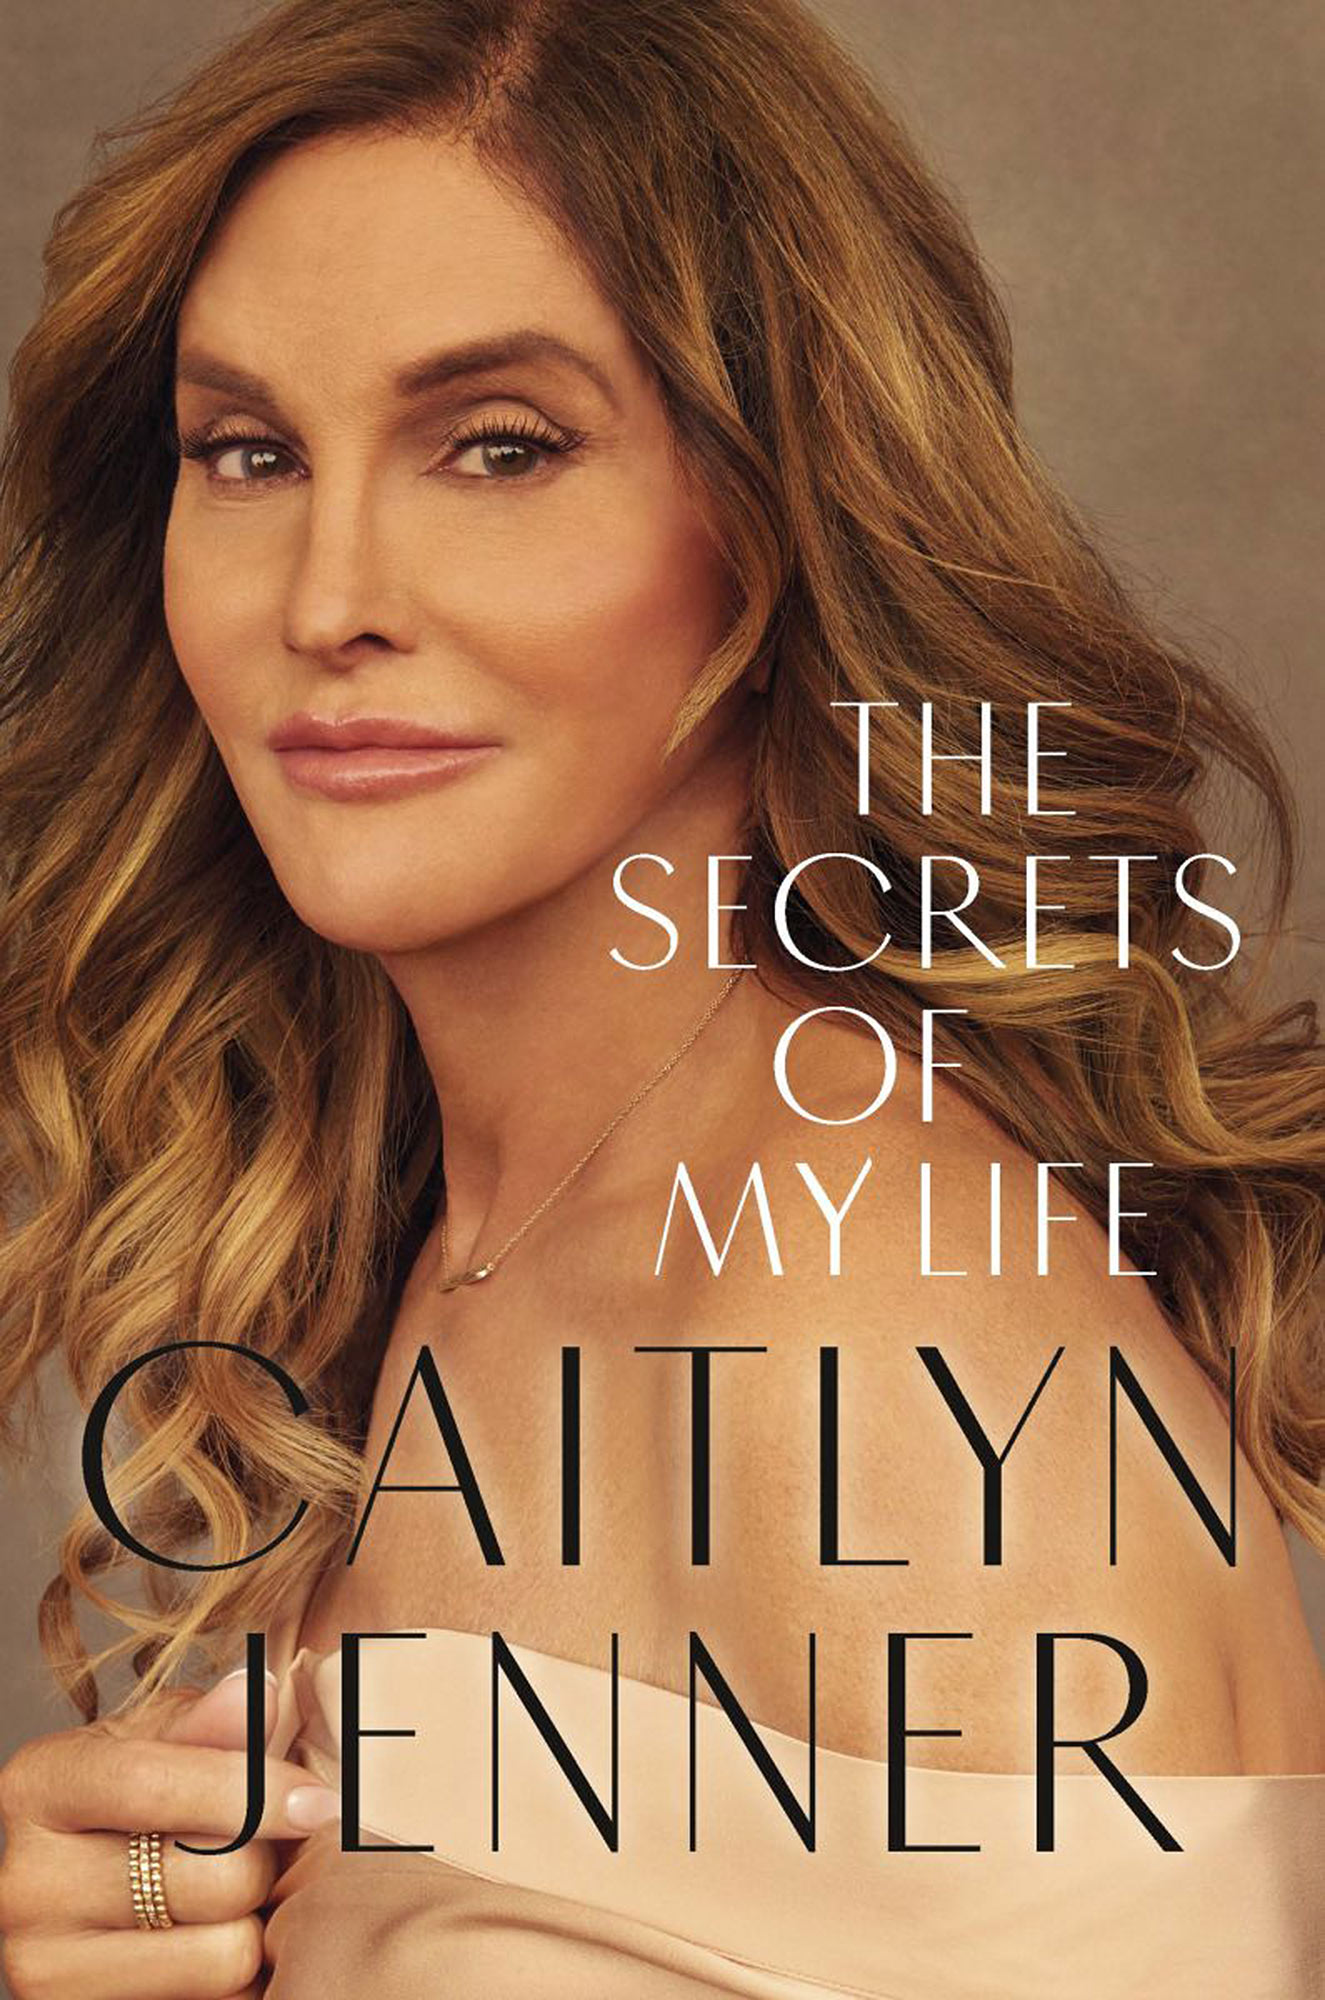 The Secrets of My Lifeby Caitlyn Jenner